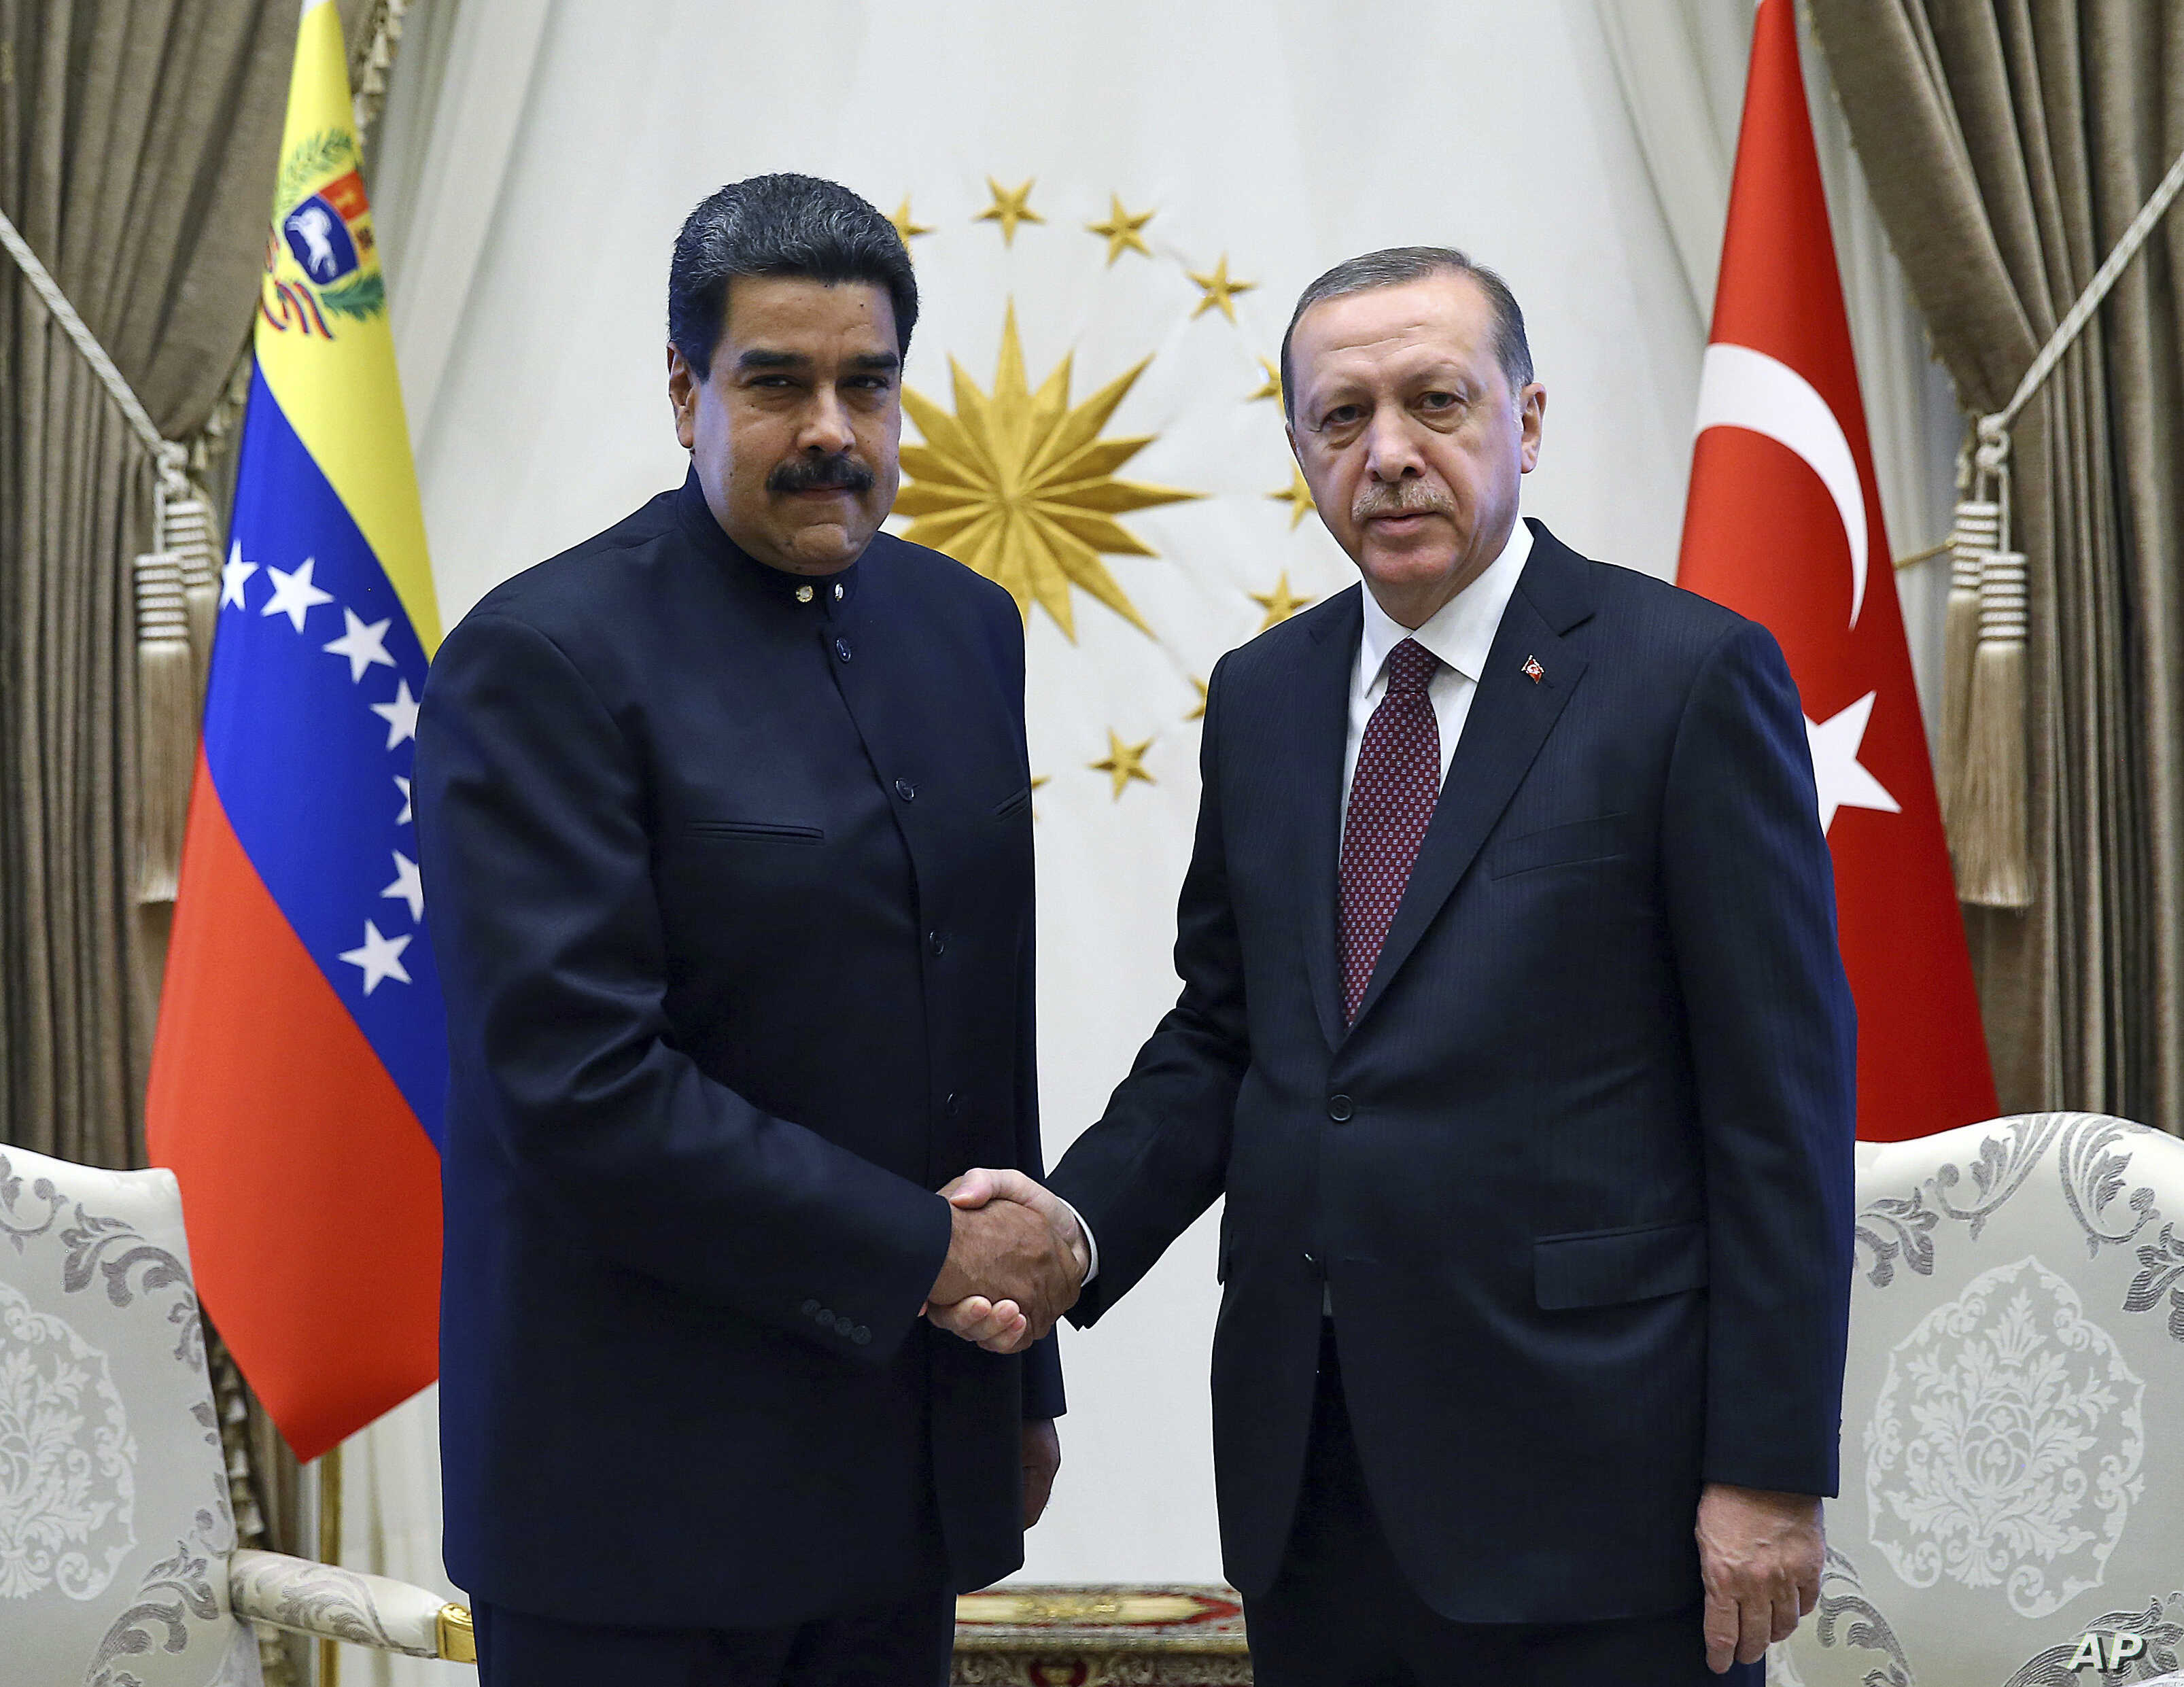 Turkey's President Recep Tayyip Erdogan, right, shakes hands with Venezuela's President Nicolas Maduro, left, prior to their meeting at the Presidential Palace in Ankara, Turkey, Oct. 6, 2017.